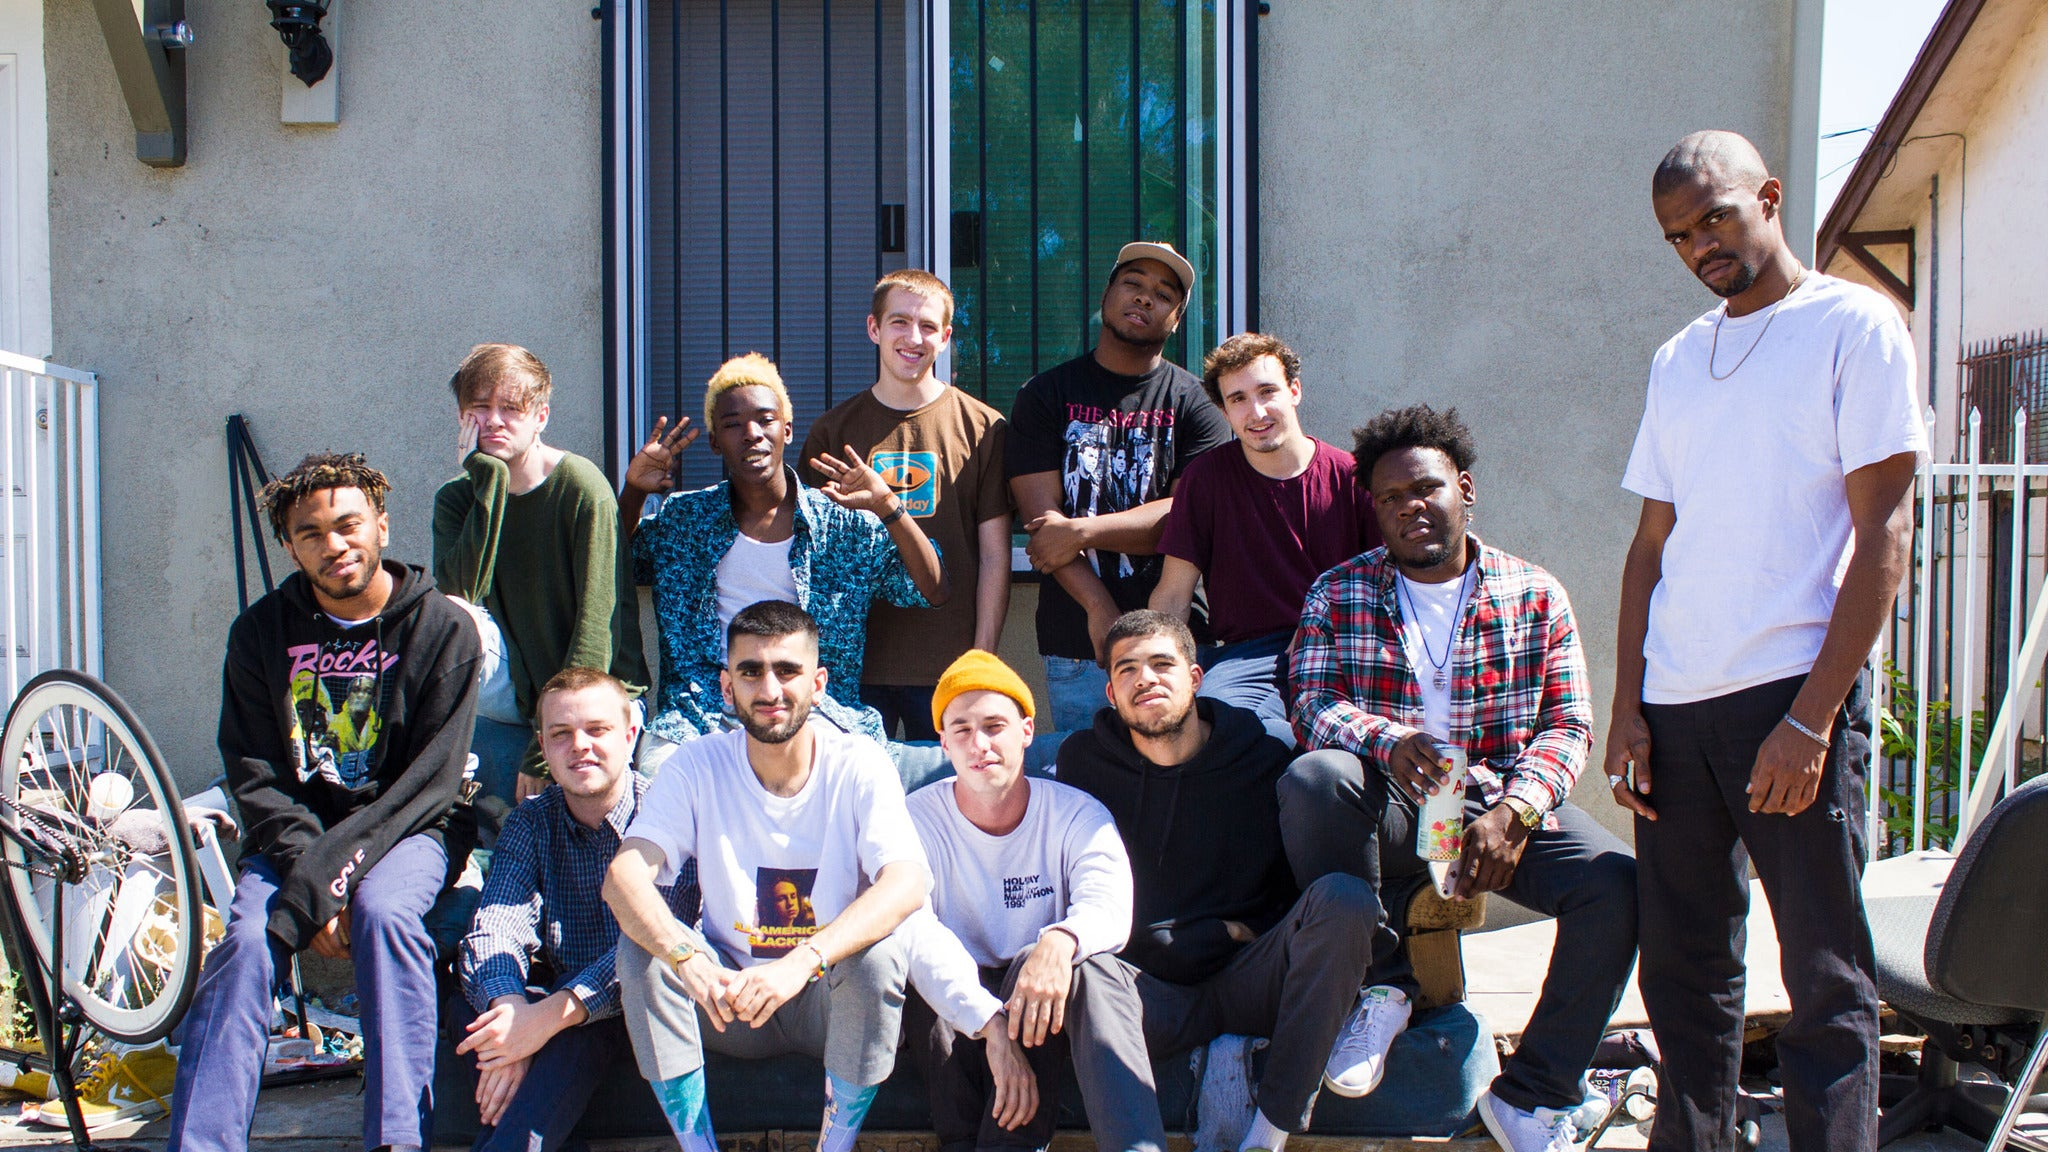 Brockhampton at Rialto Theatre-Tucson